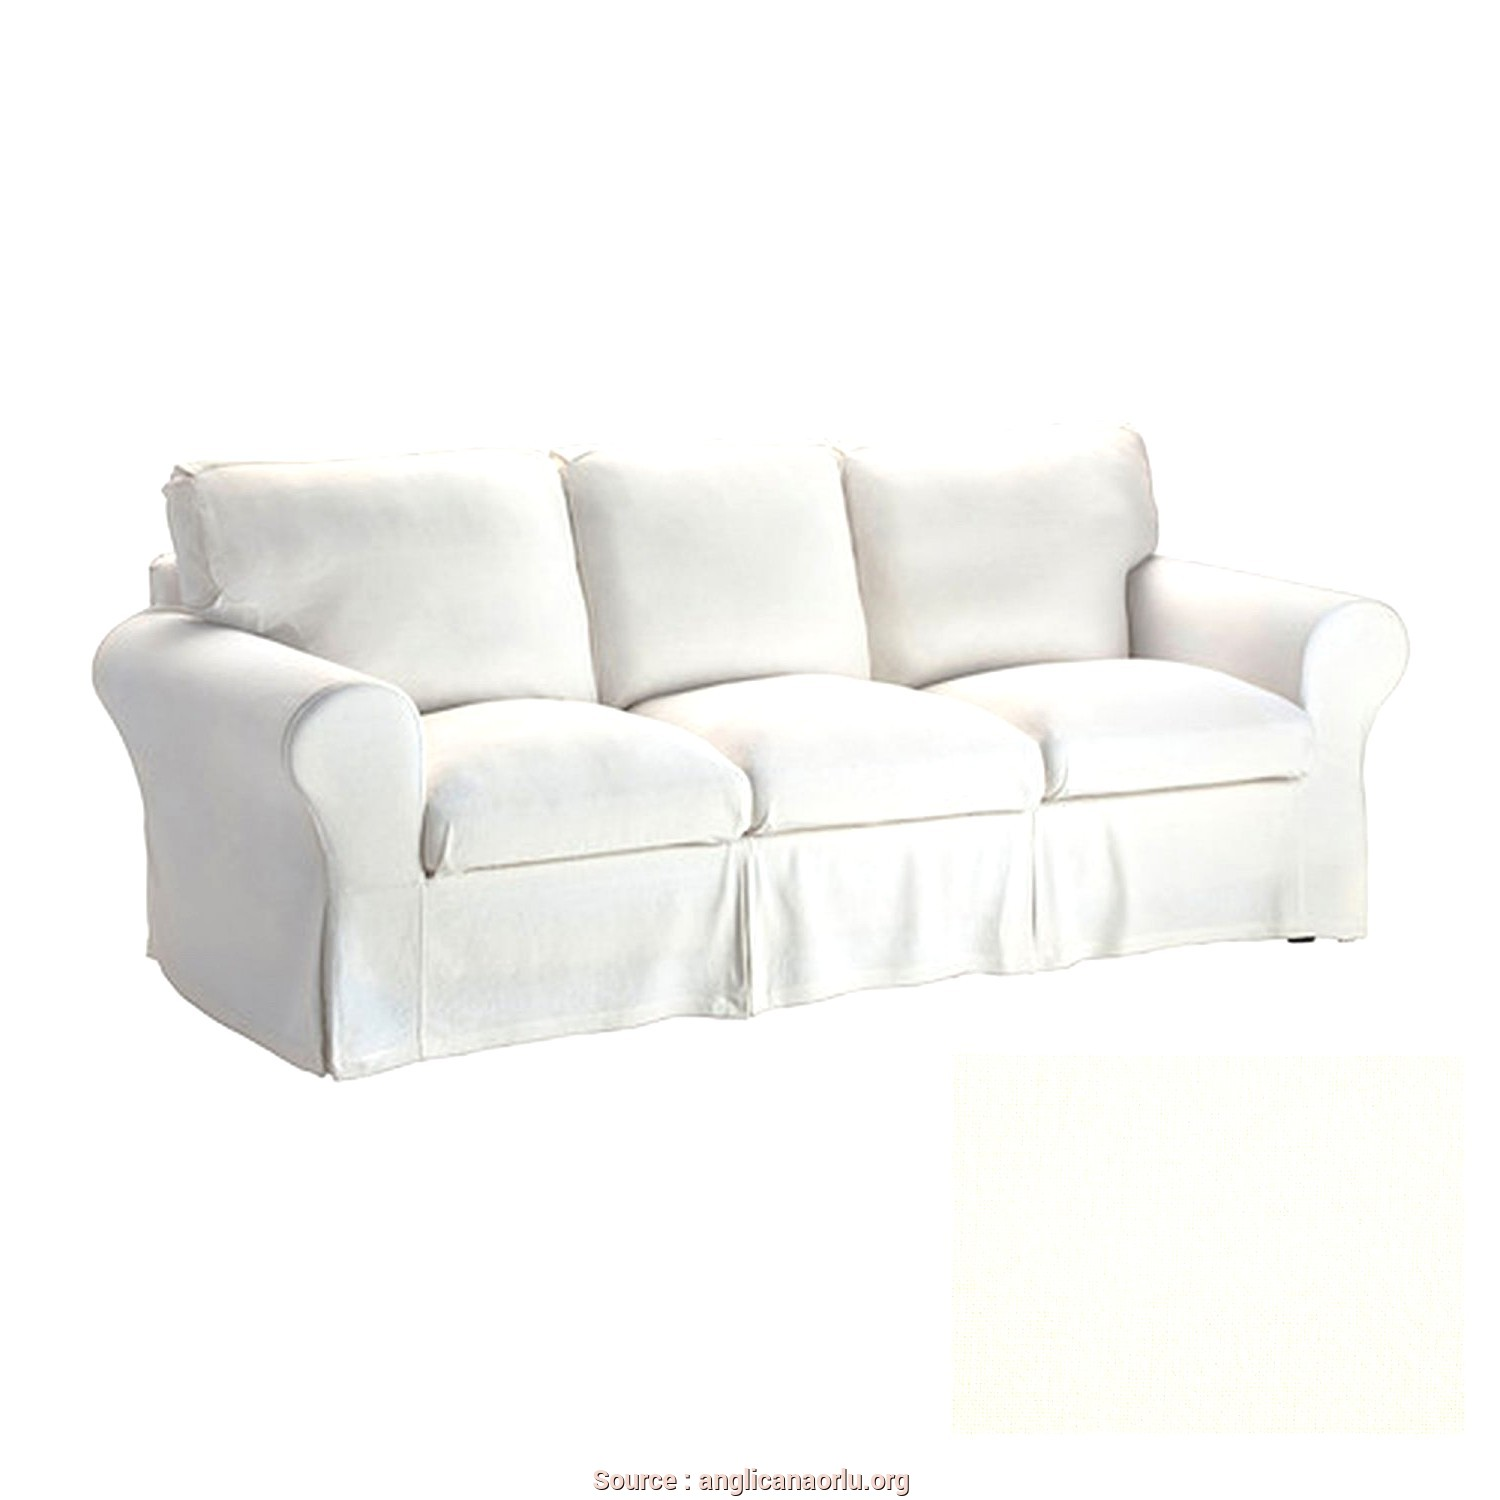 Ikea Beddinge Cover Ebay, A Buon Mercato ... Ikea Knislinge Sectional Ikea Sofa Covers Discontinued Knislinge Avec Ikea Knislinge Sectional Assembly Knislinge Sofa Samsta